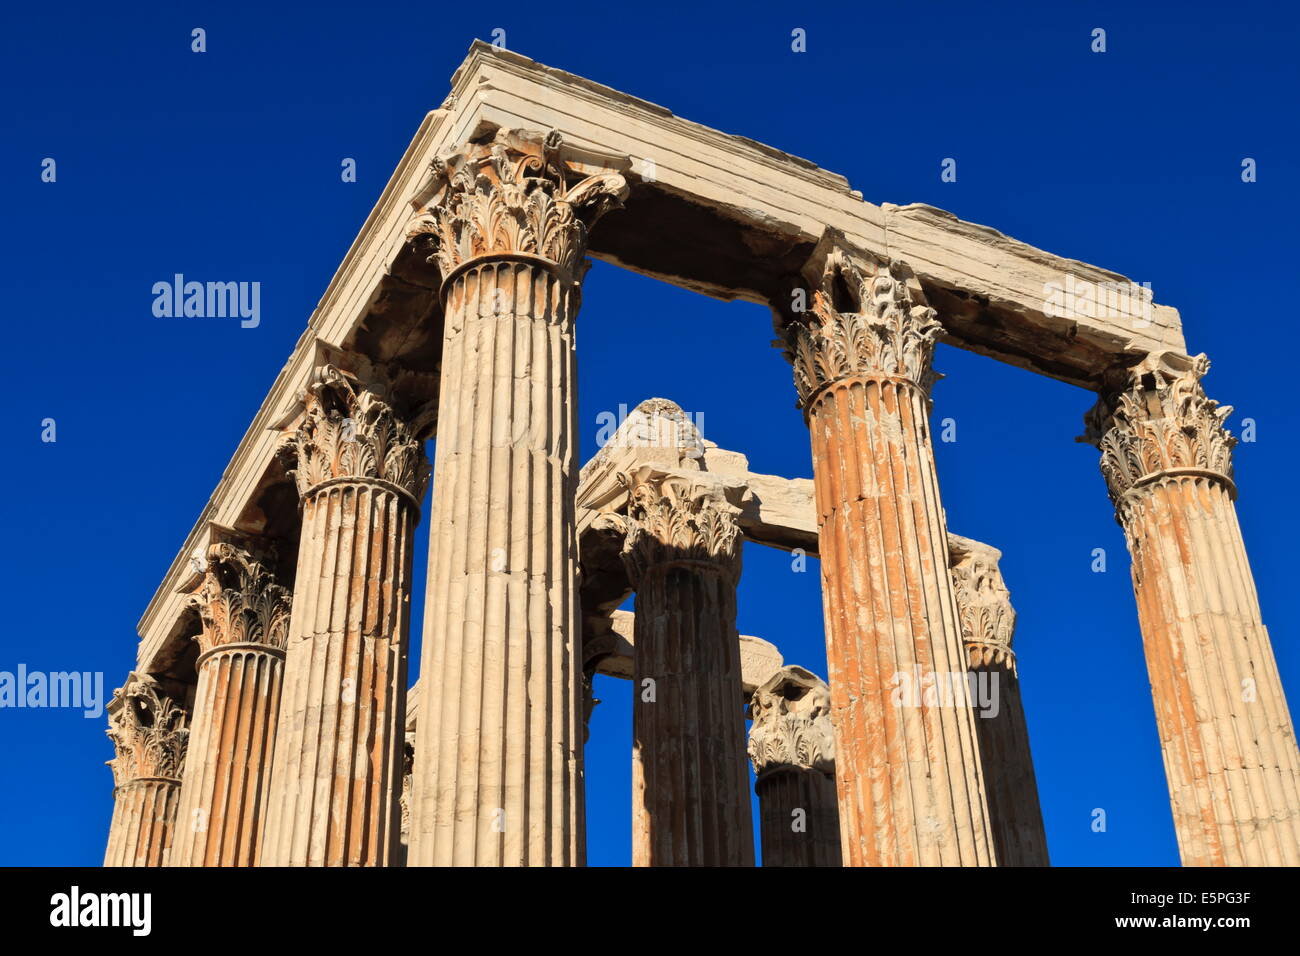 Standing Corinthian columns, early morning, Temple of Olympian Zeus, Athens, Greece, Europe Stock Photo